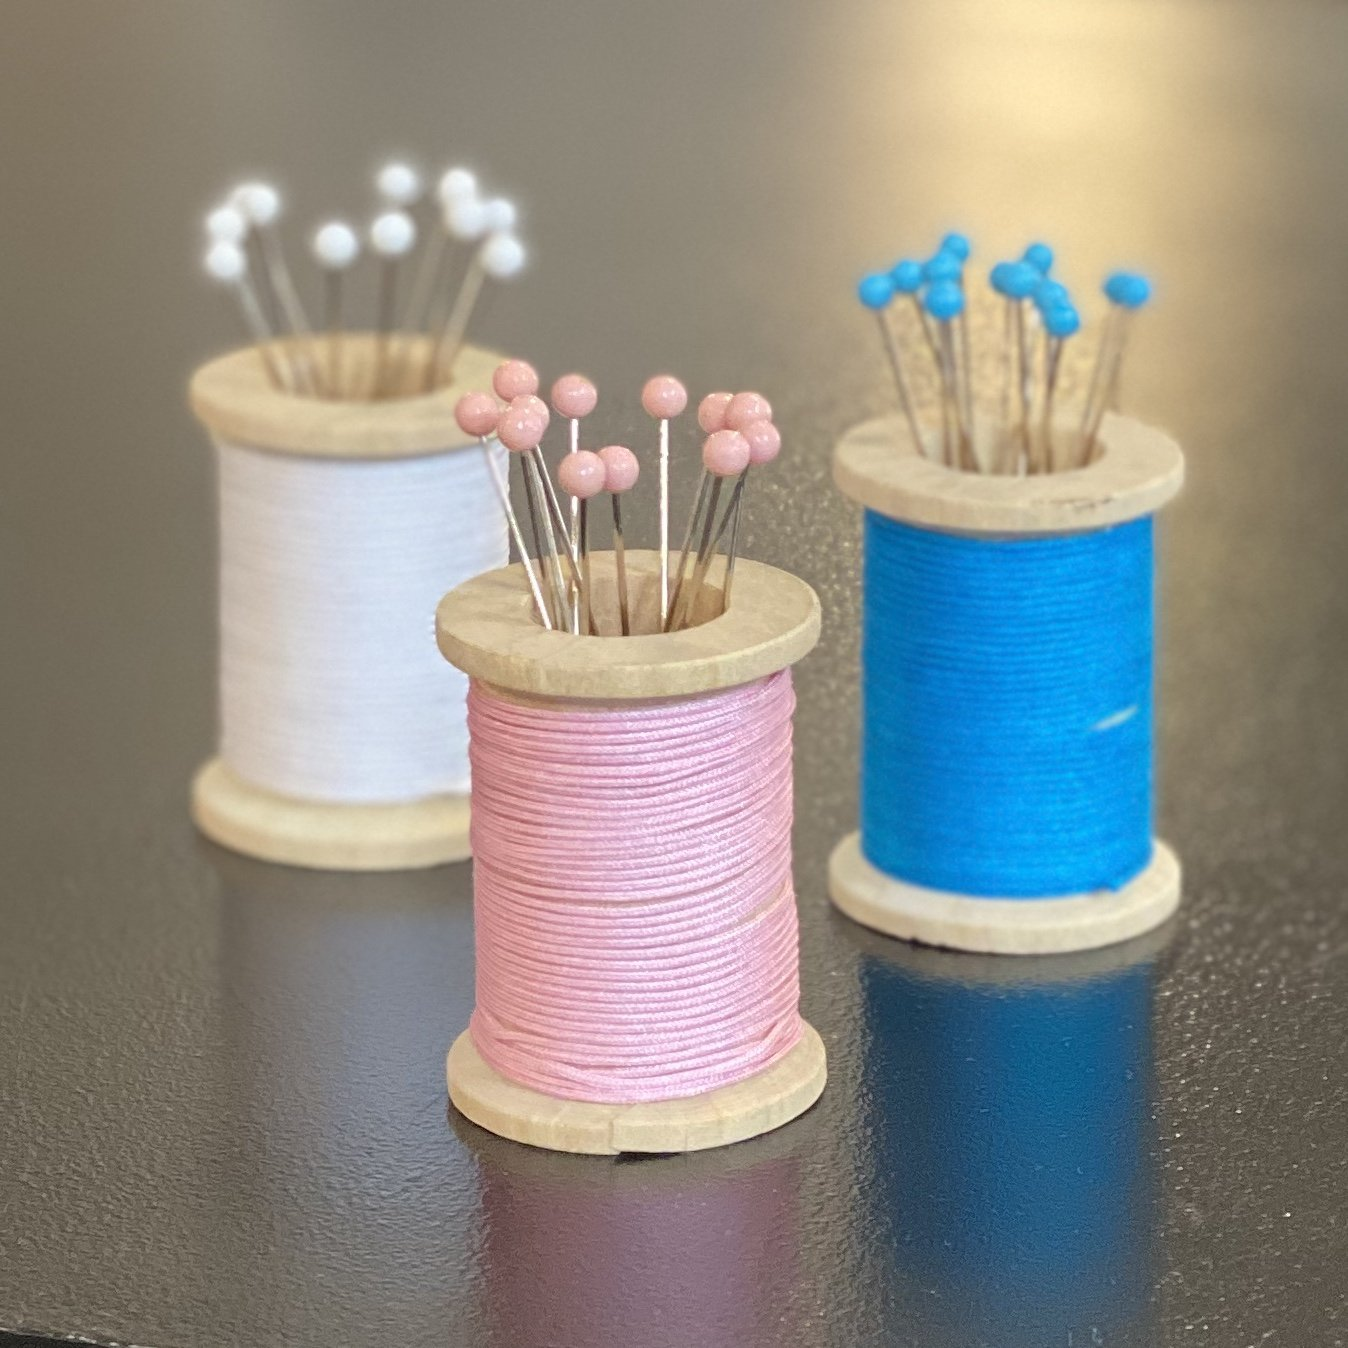 Magnetic Spool Pin Holder (Pink, Blue, or White)